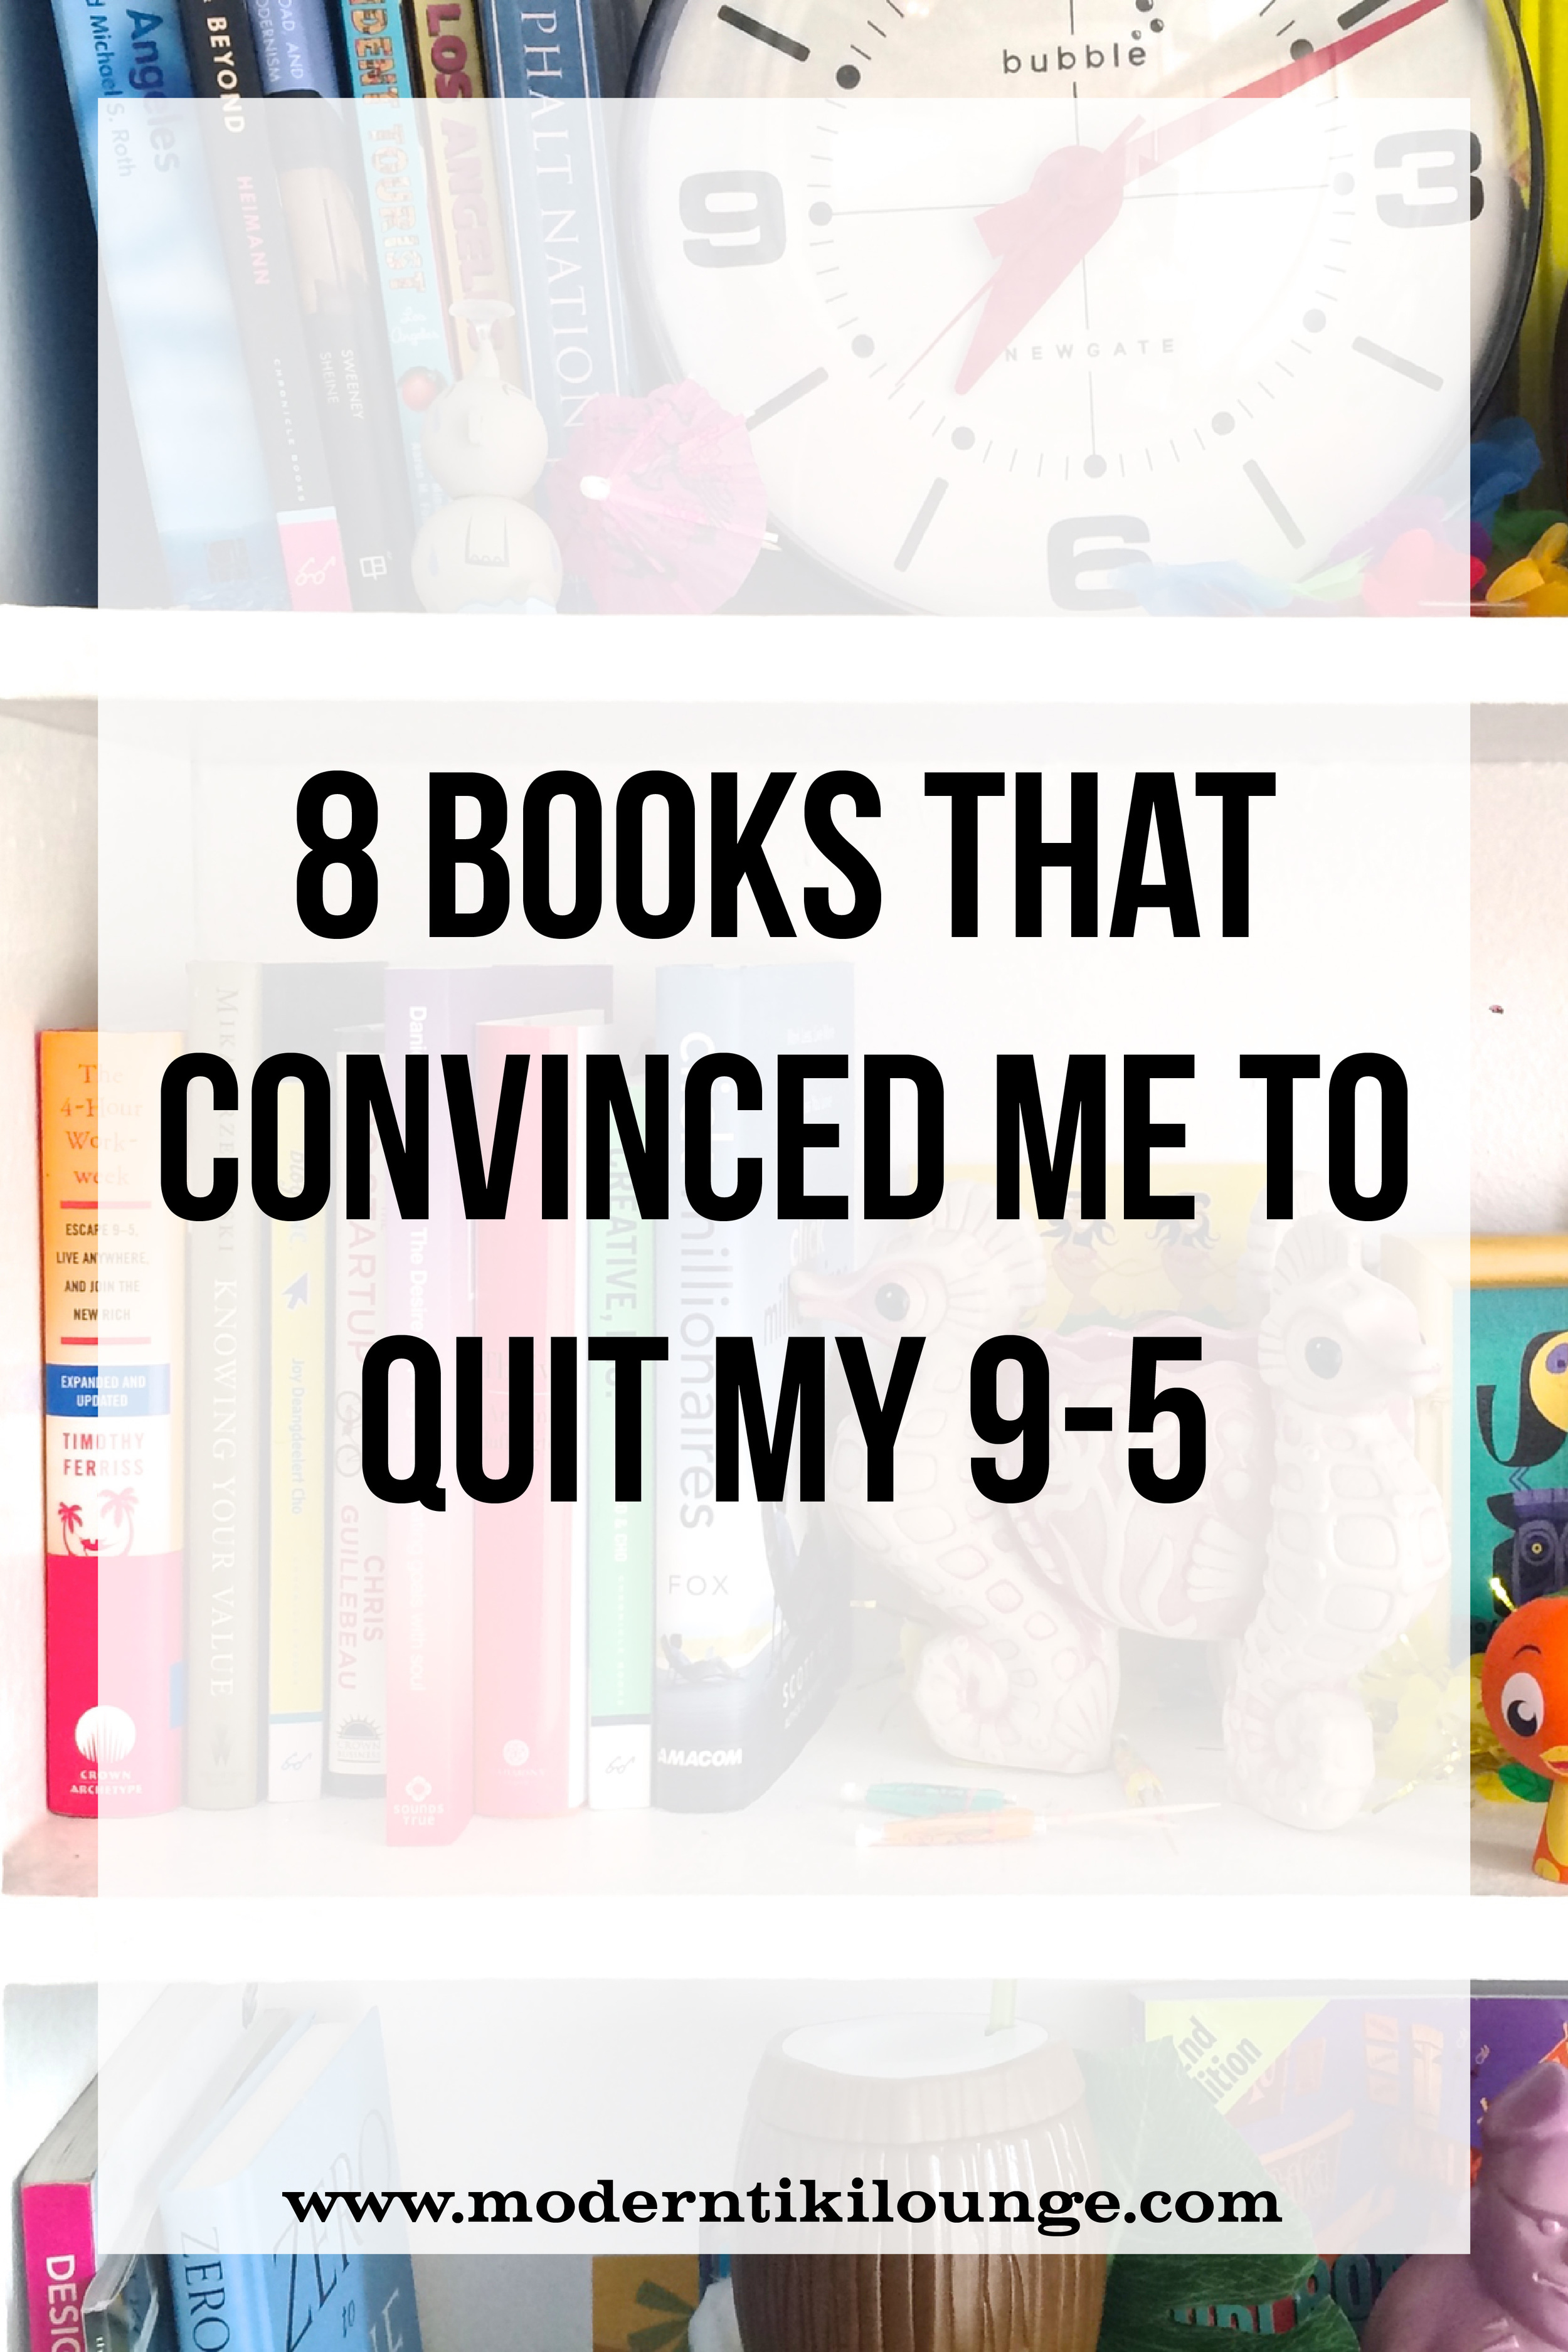 8-books-that-convinced-me-to-quit-my-9-5.jpg